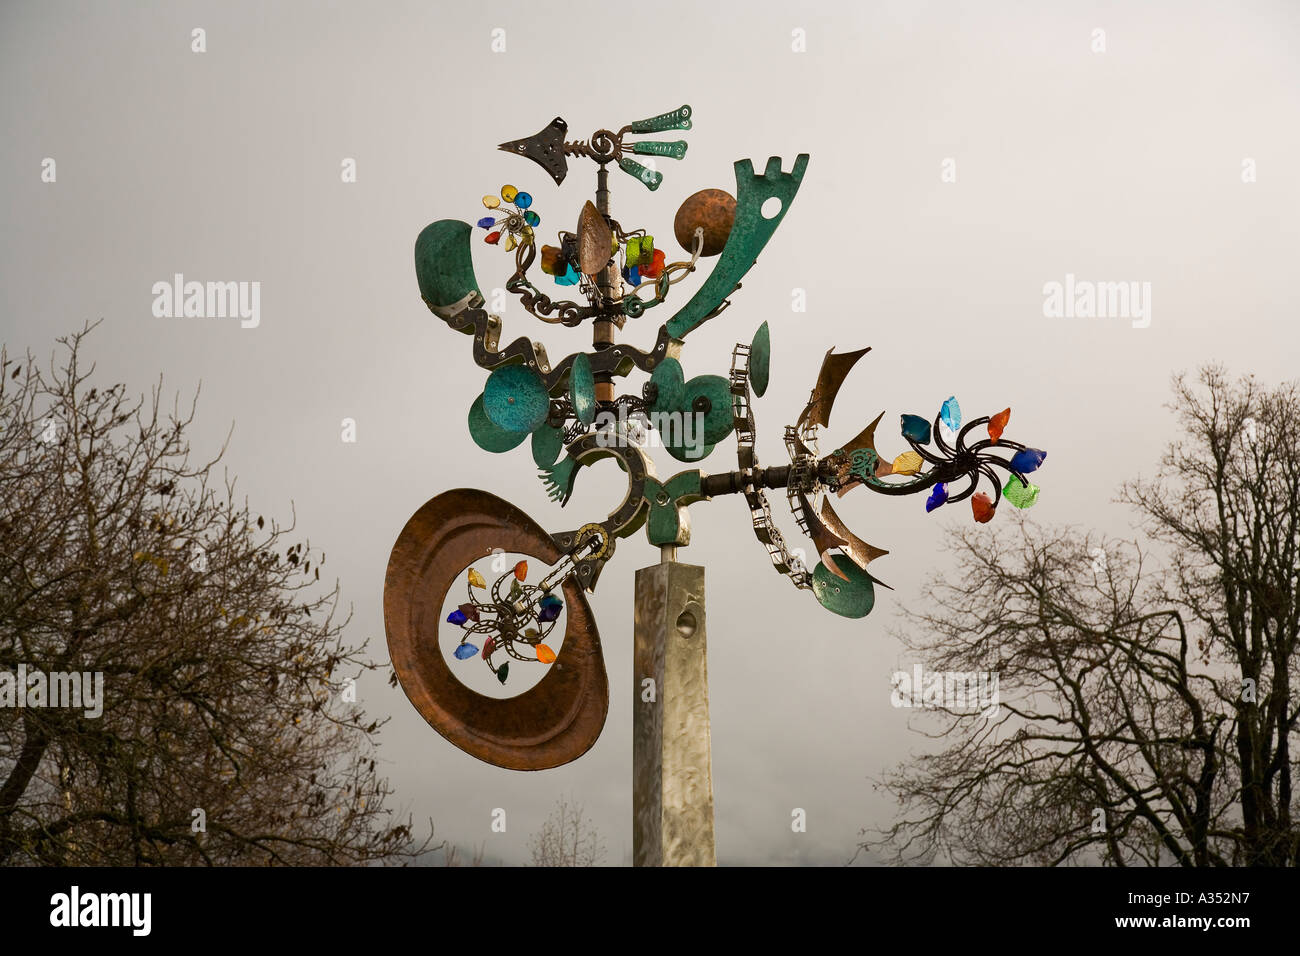 Kinetic sculpture by Andrew Carson at waterfront park in Stevenson Washington - Stock Image